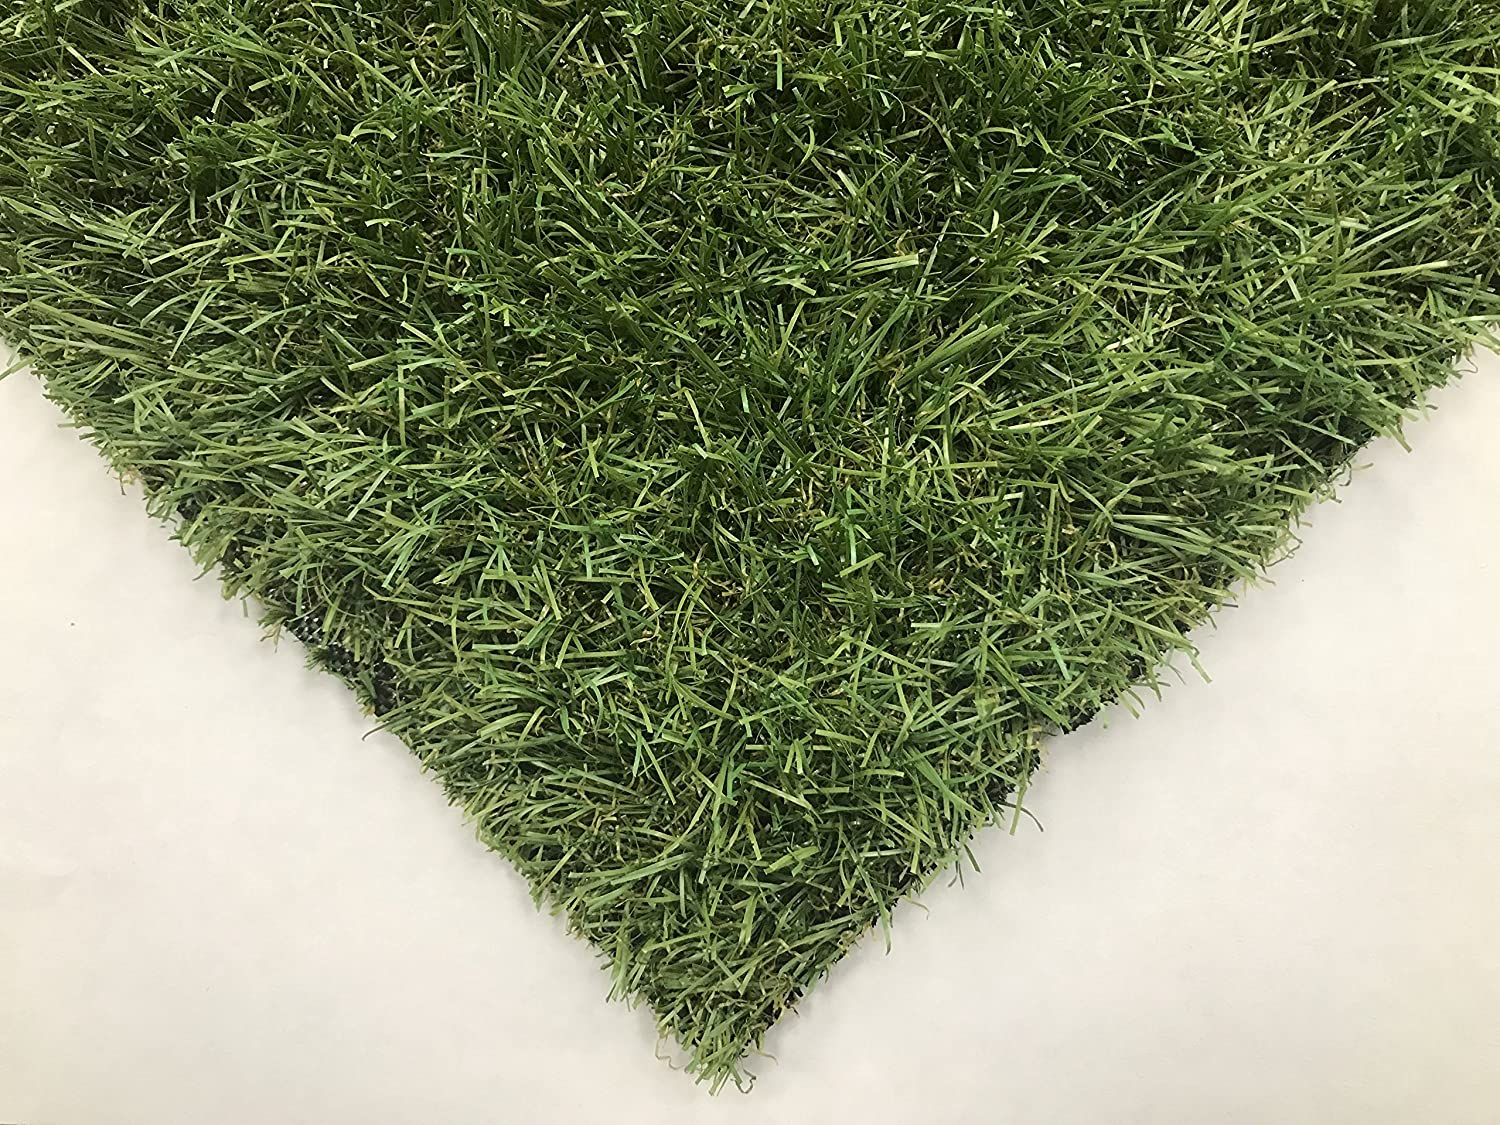 2m x 1m | 20mm Pile Height Loco Artificial Grass | Cheap Natural & Realistic Looking Astro Garden Lawn | High Density Fake Turf | 6ft 7in x 3ft 3in Tuda Grass Direct